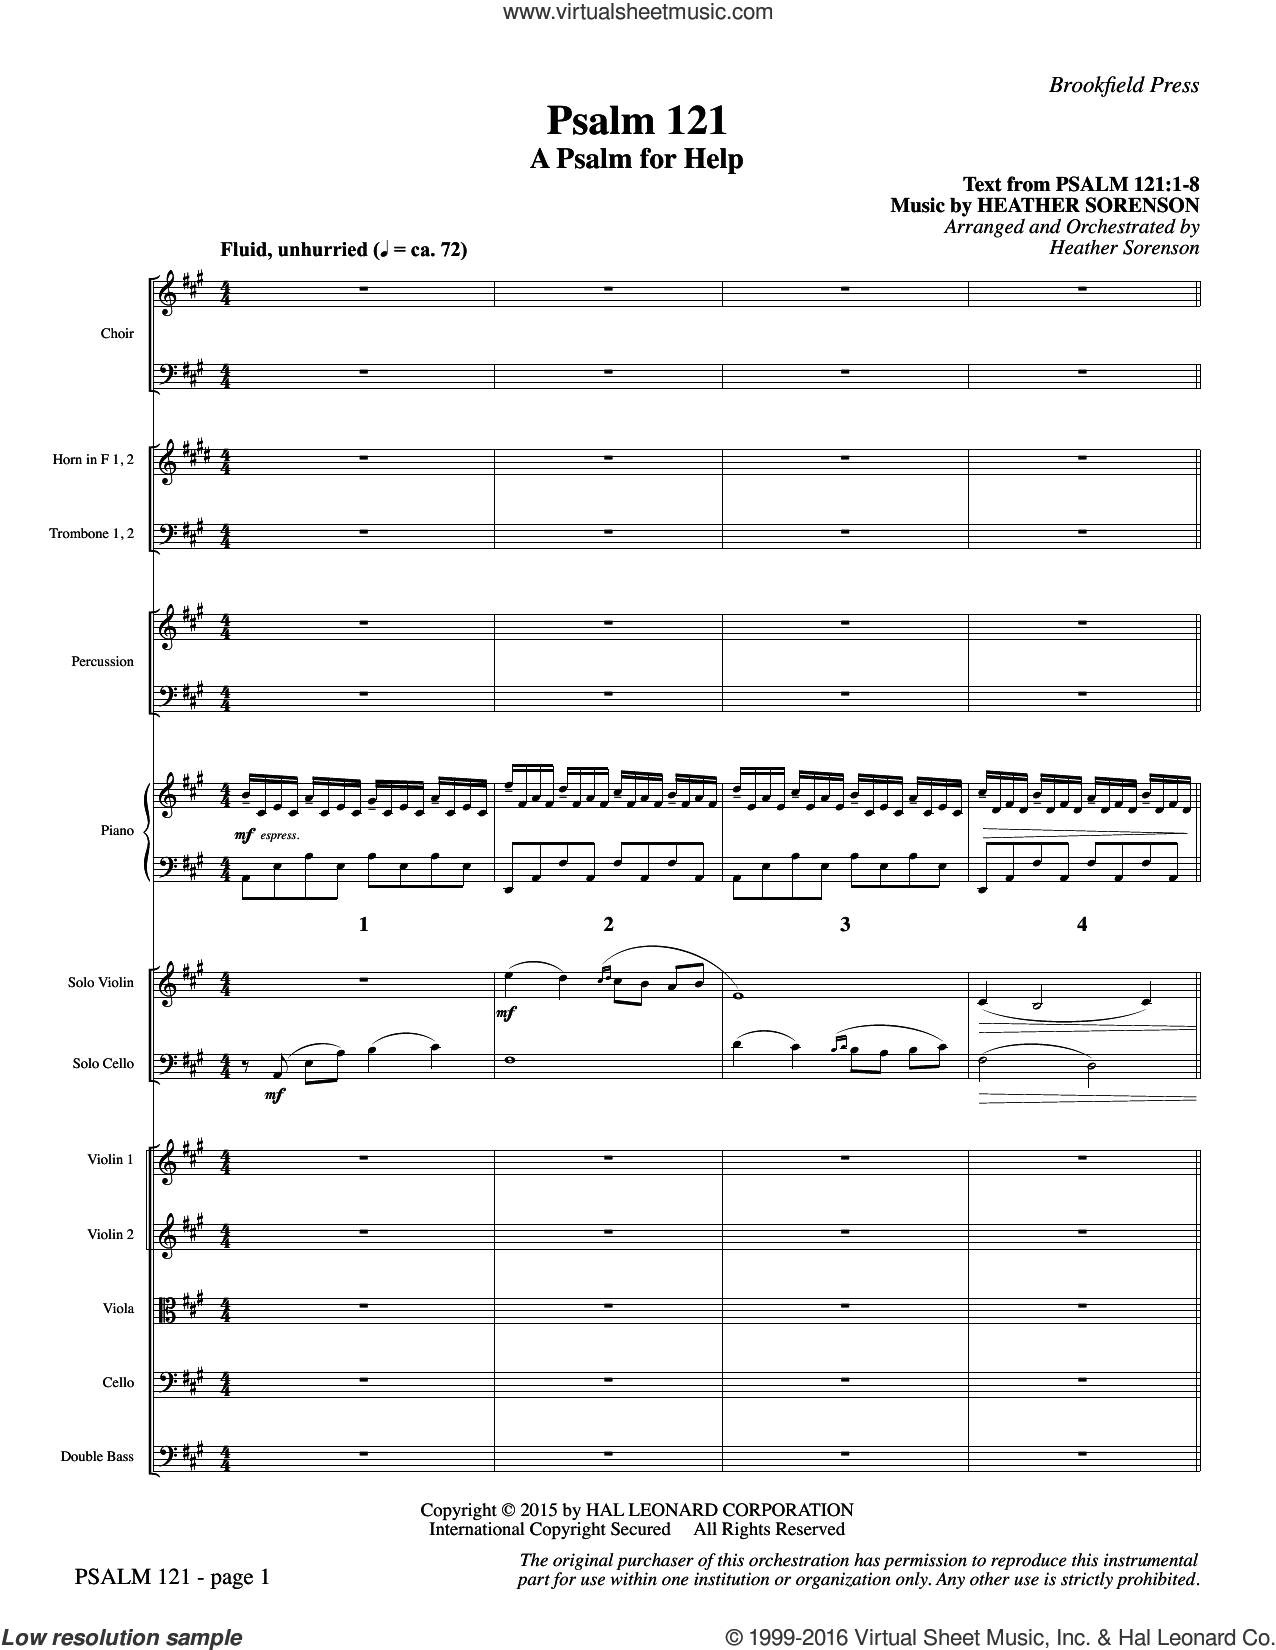 Psalm 121 (A Psalm For Help) (COMPLETE) sheet music for orchestra by Heather Sorenson